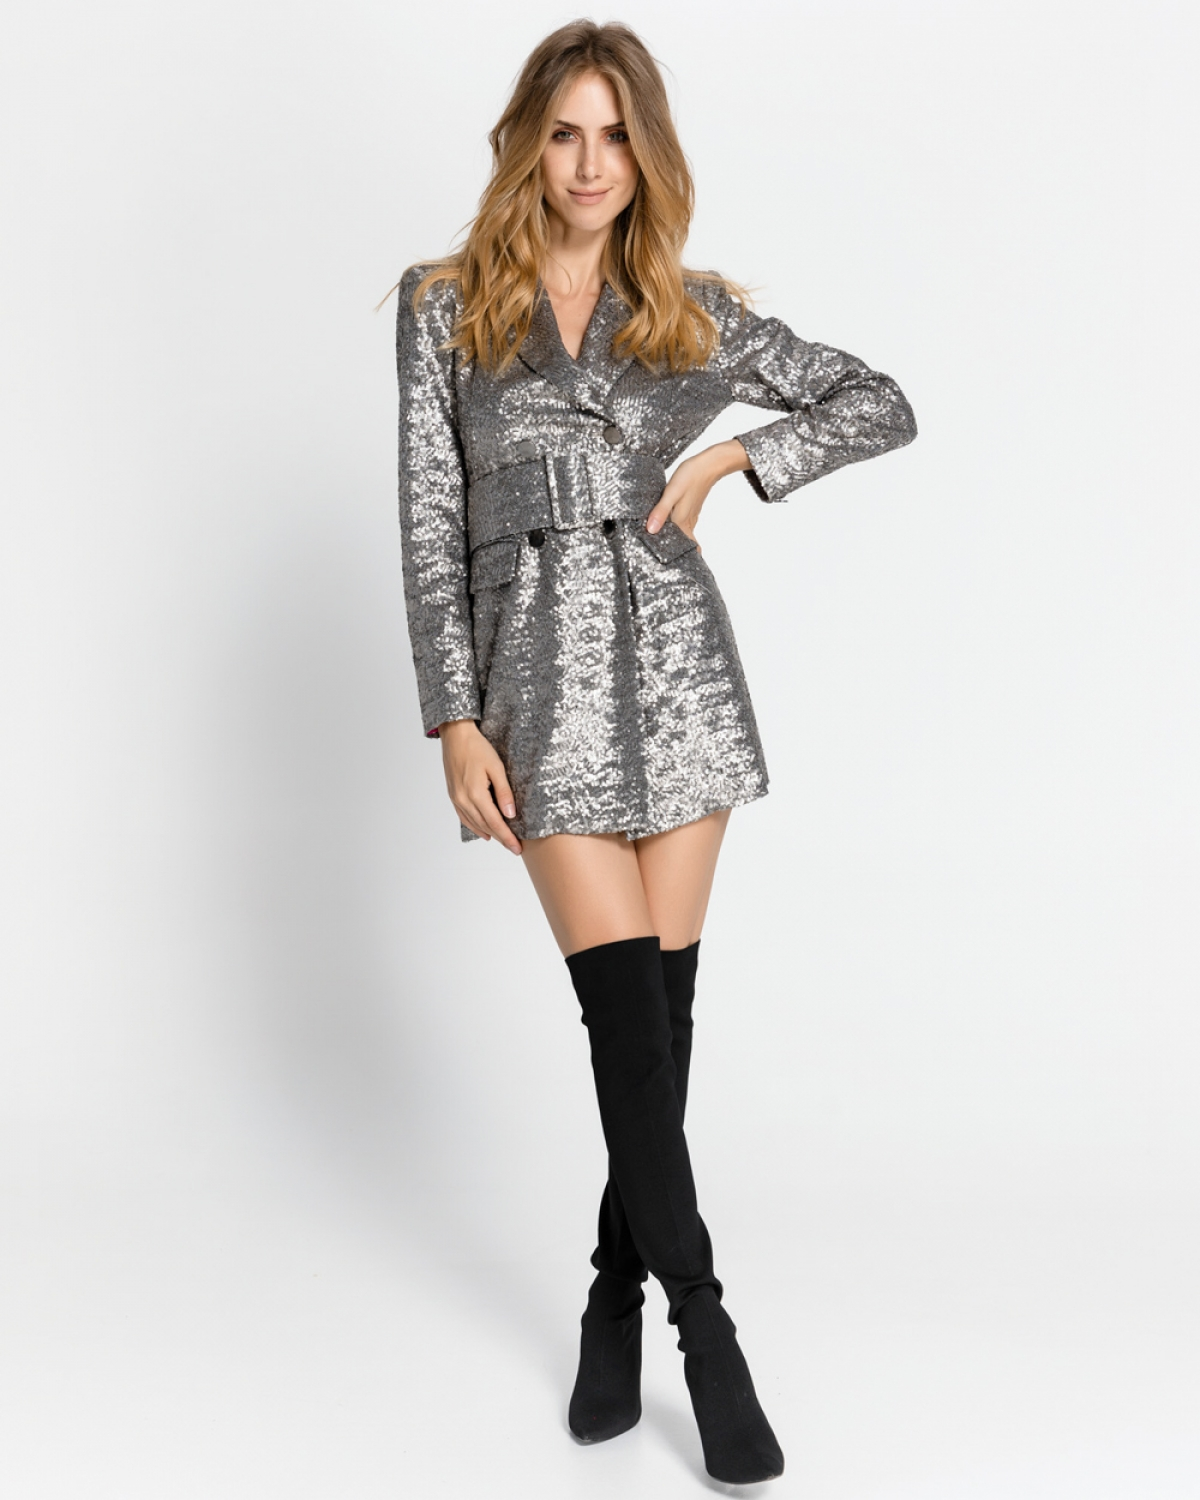 Silver Sequined Blazer Dress